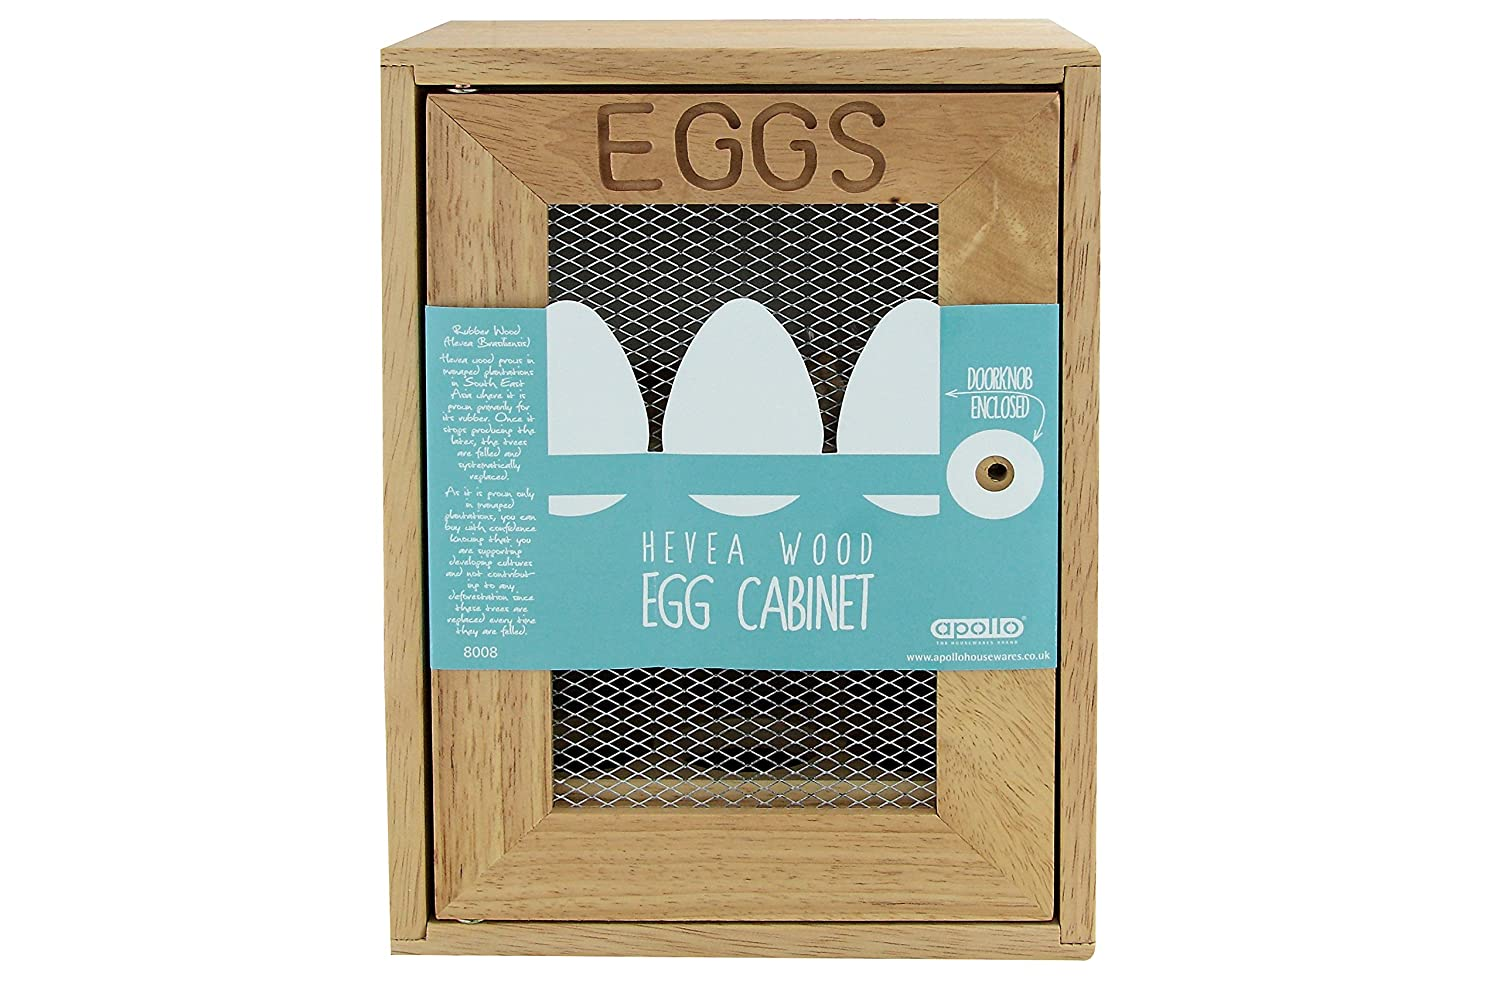 Apollo Rb Egg Cabinet Mesh Front: Amazon.co.uk: Kitchen & Home